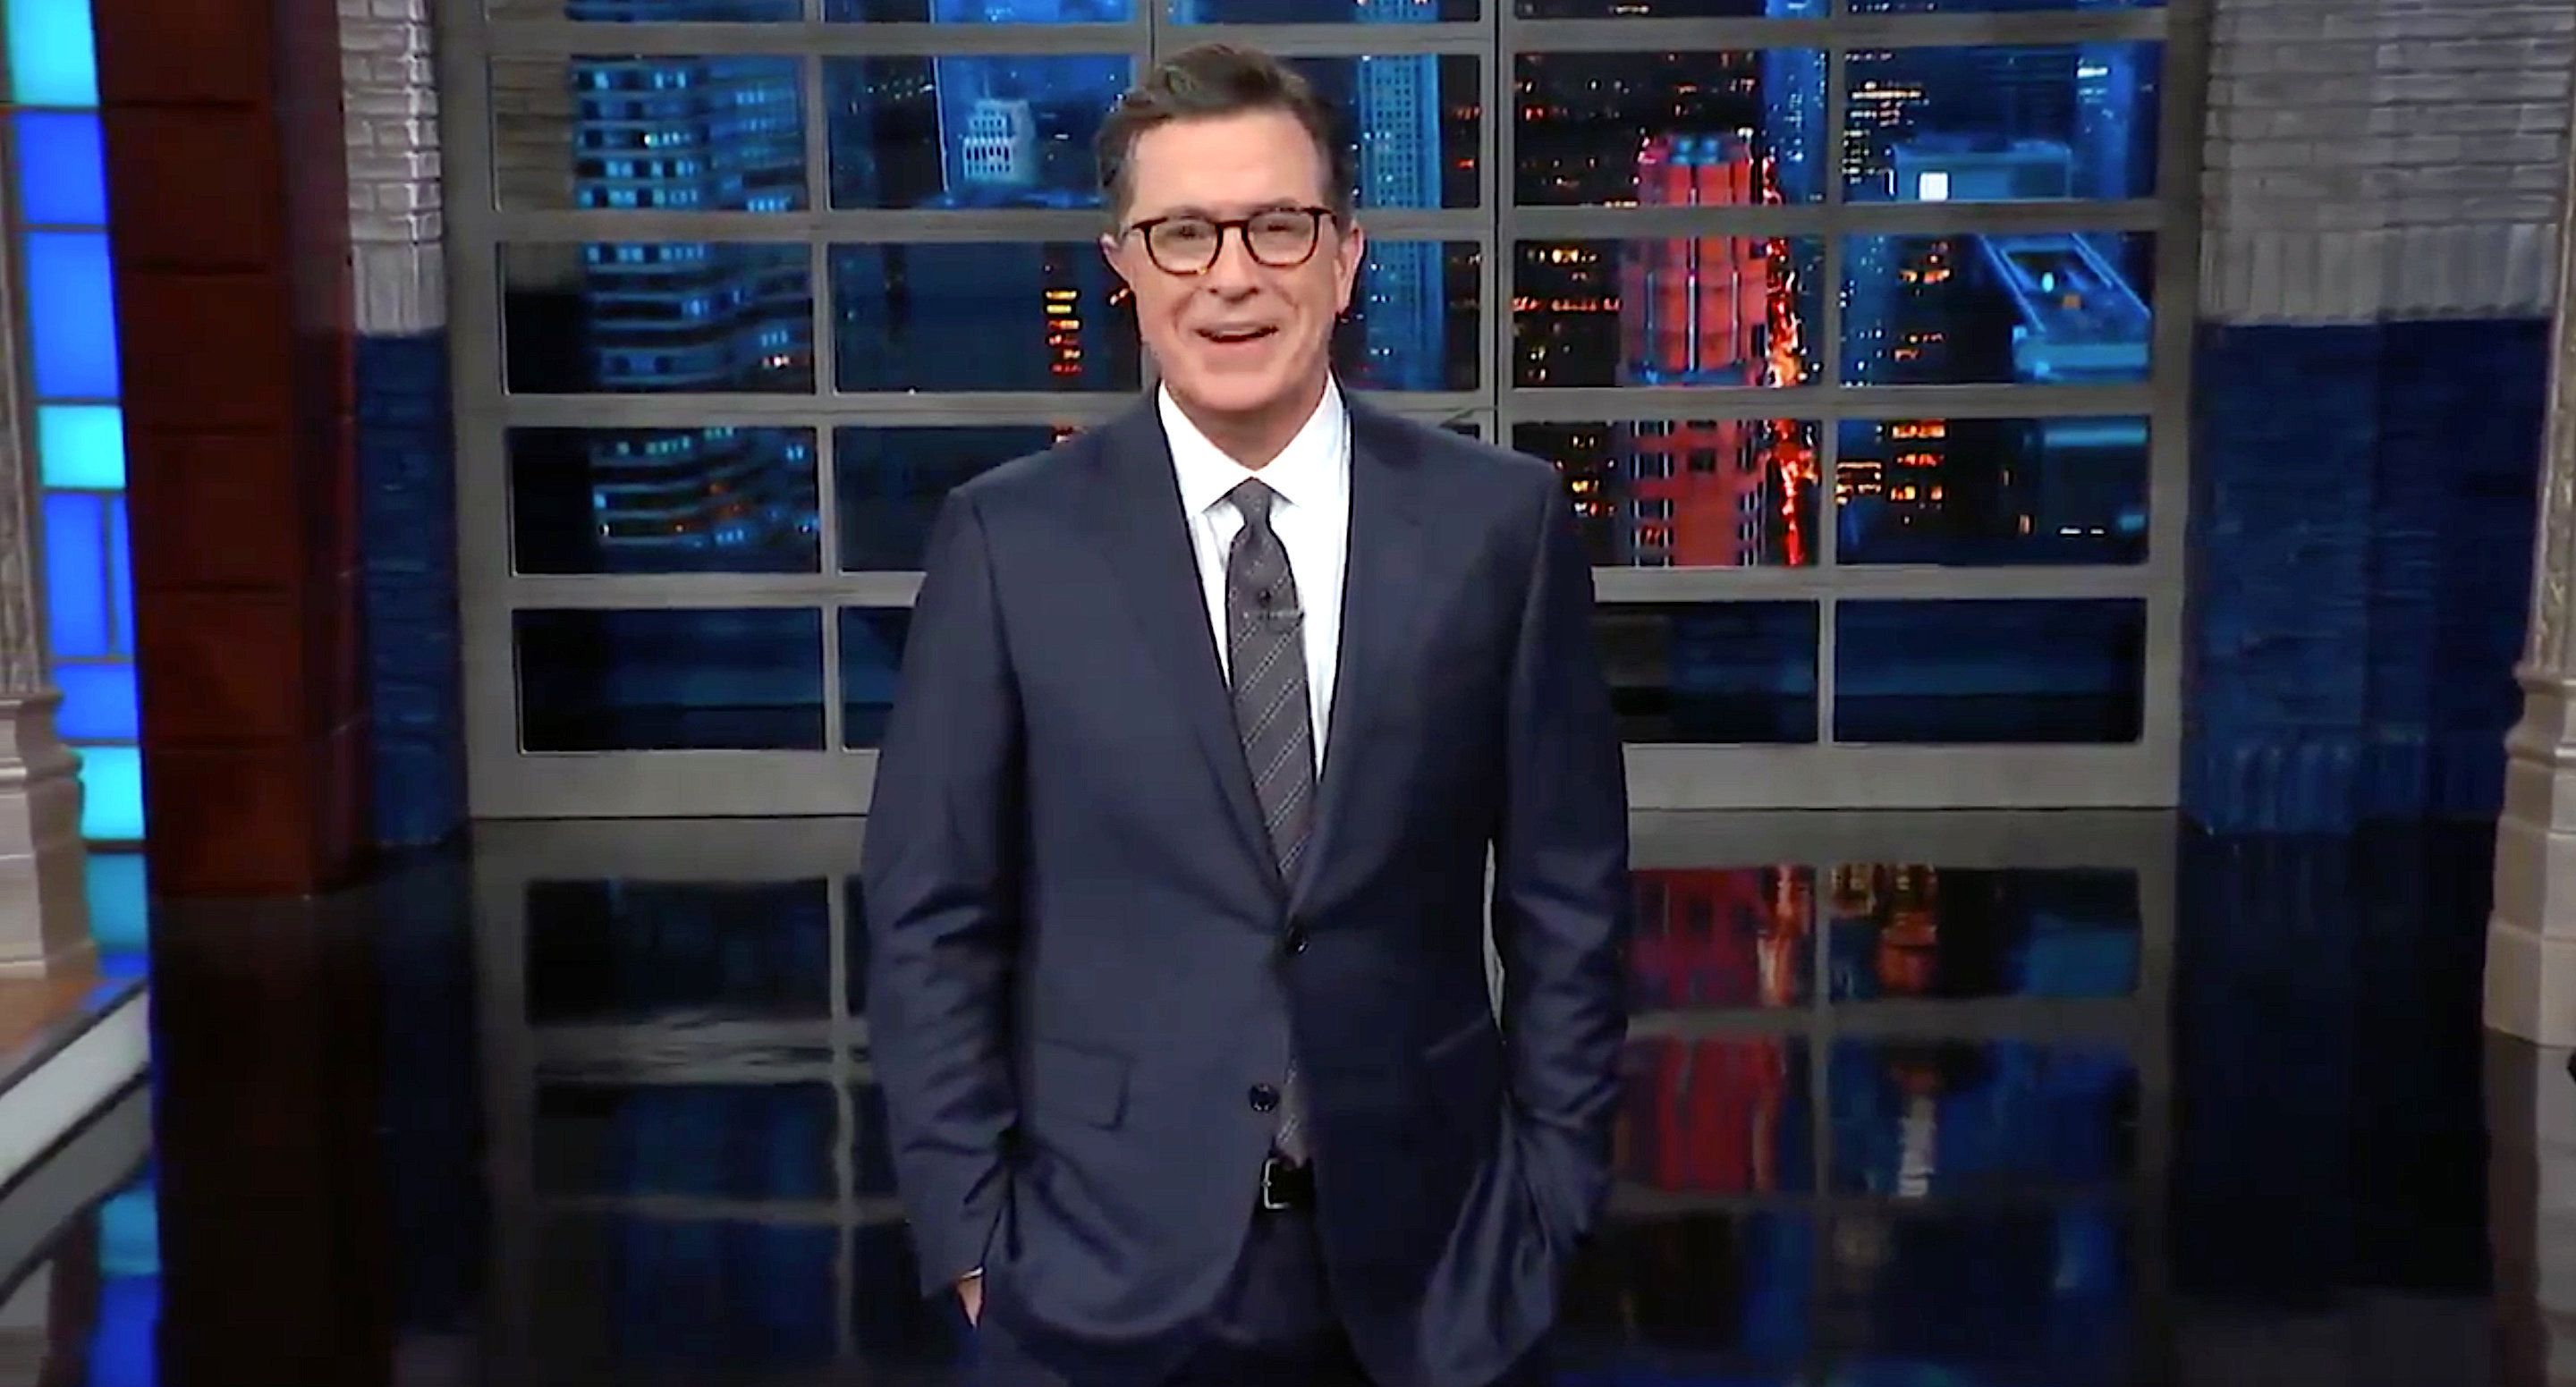 Westlake Legal Group 5c42af152600005901faebff Stephen Colbert Claps Back at Fox News And MSNBC.